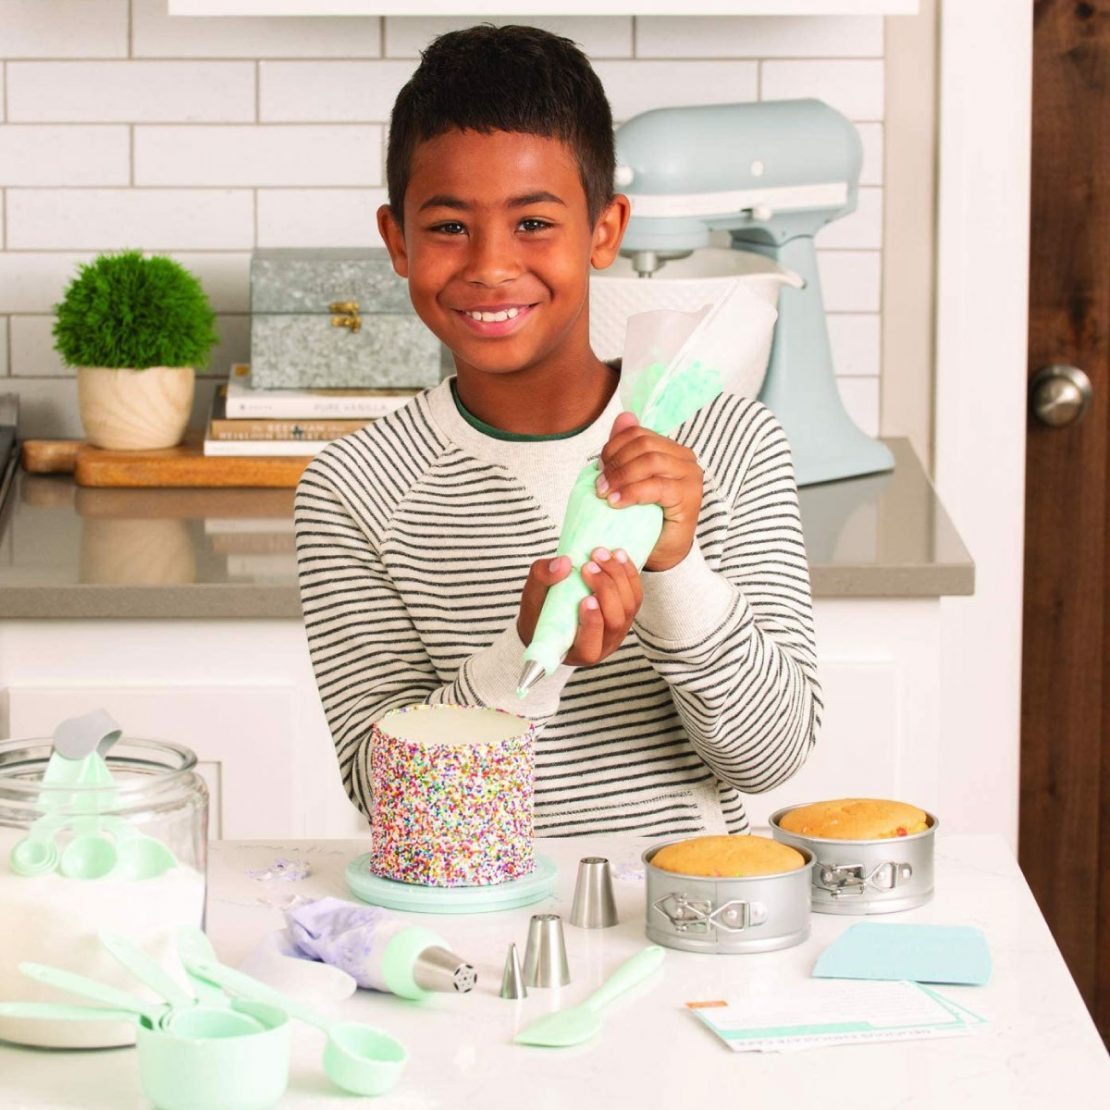 Playful Chef Cooking Sets Happy Up Inc